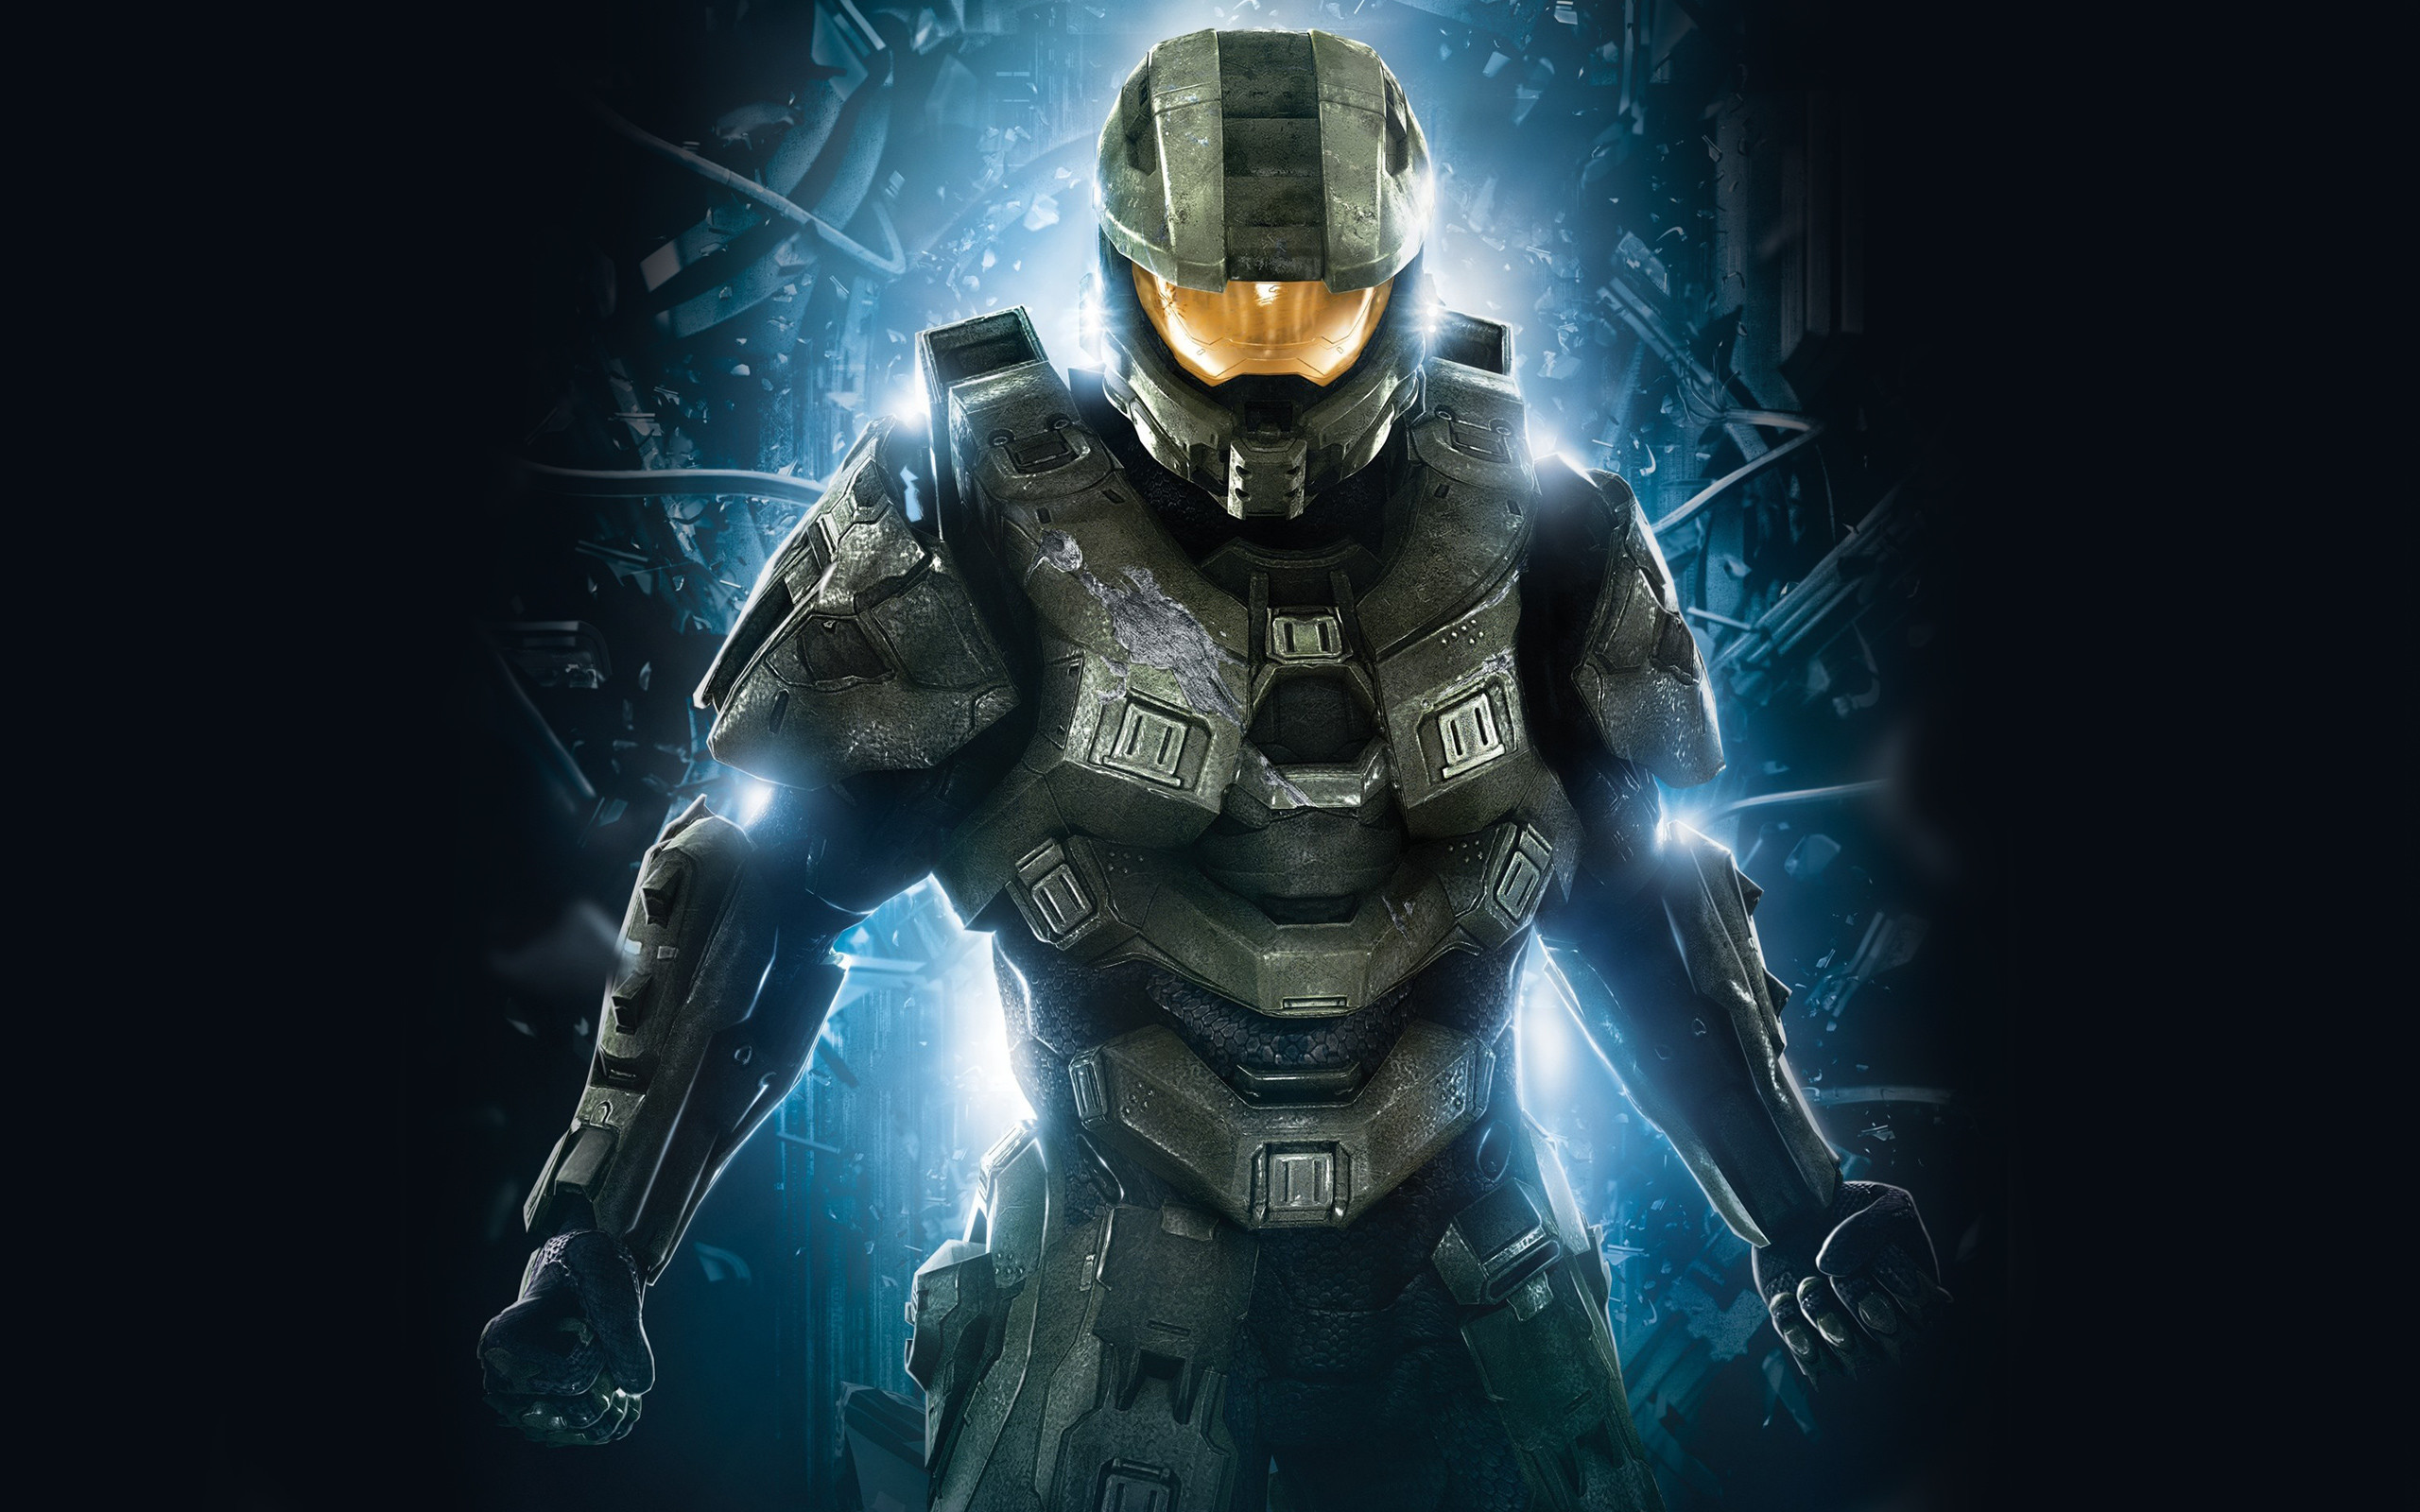 2560x1600 Master Chief in Halo 4 Wallpapers | HD Wallpapers